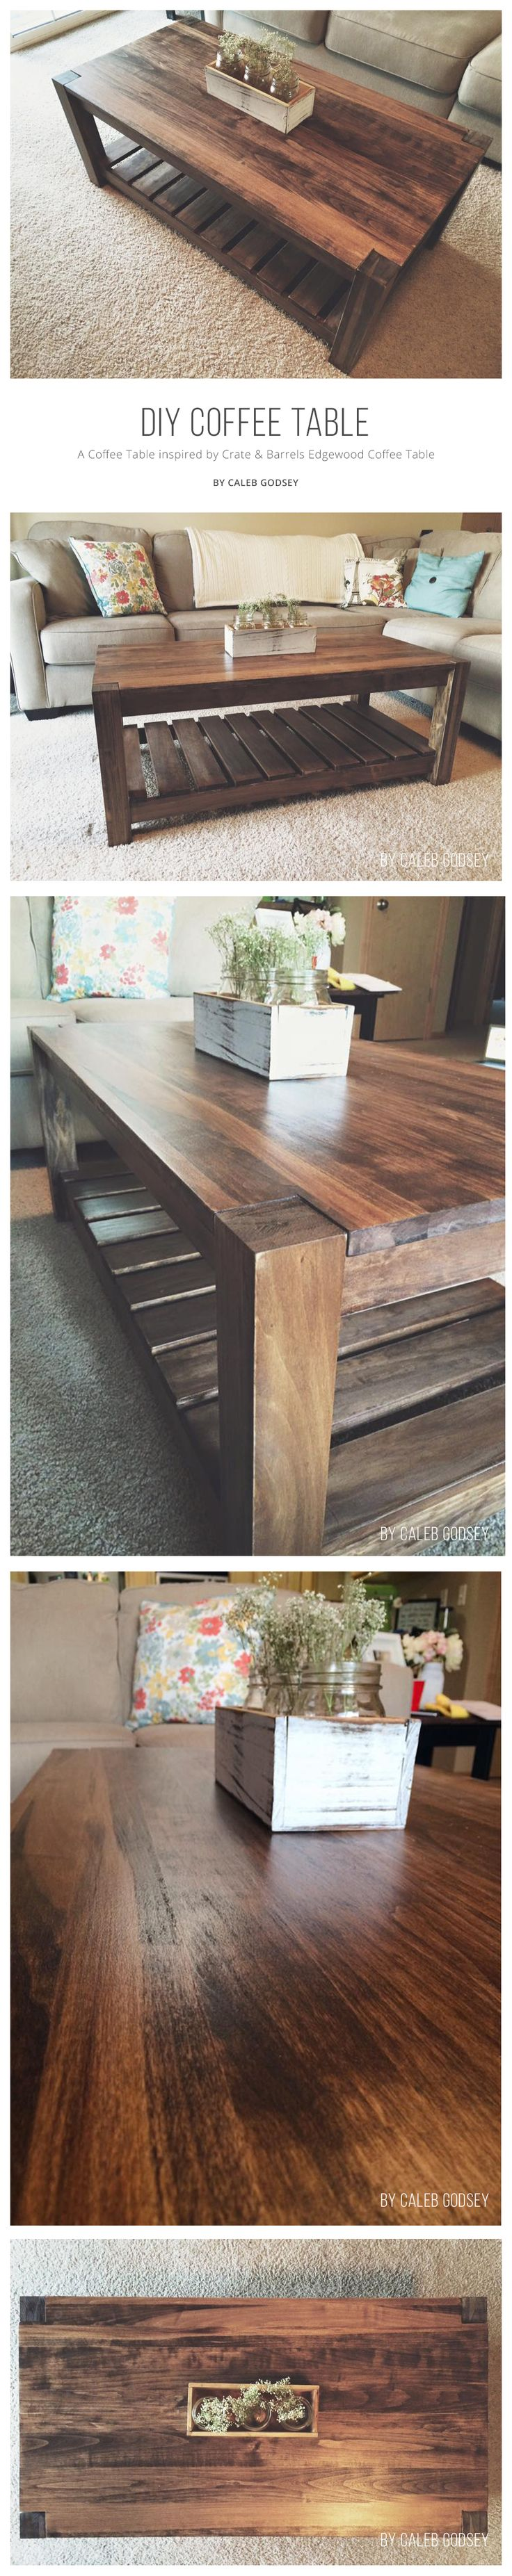 Best 25 Wood pallet coffee table ideas on Pinterest